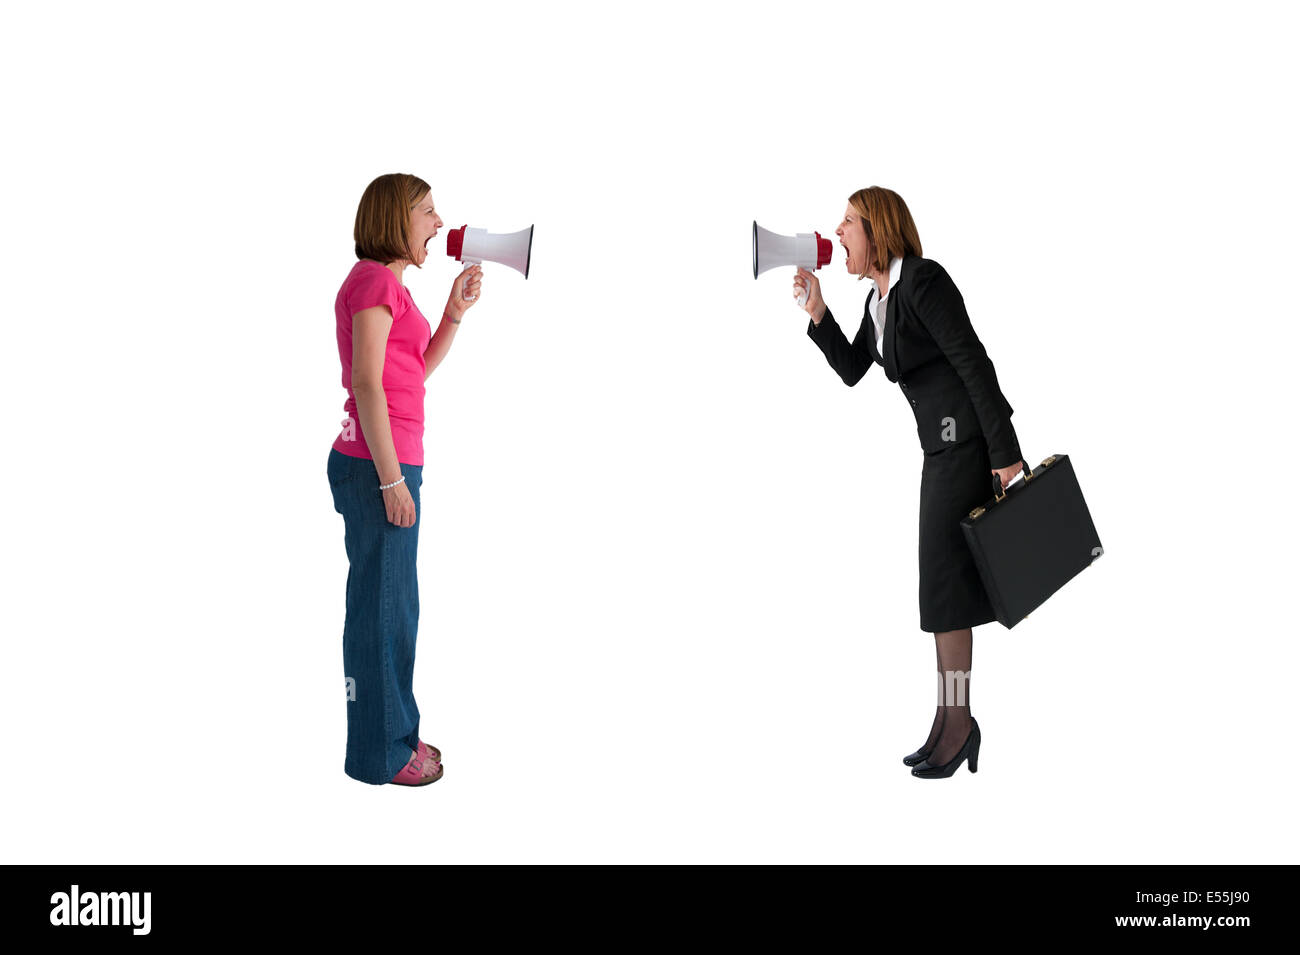 angry shouting women - businesswoman and woman - shouting with megaphones isolated on white background - Stock Image